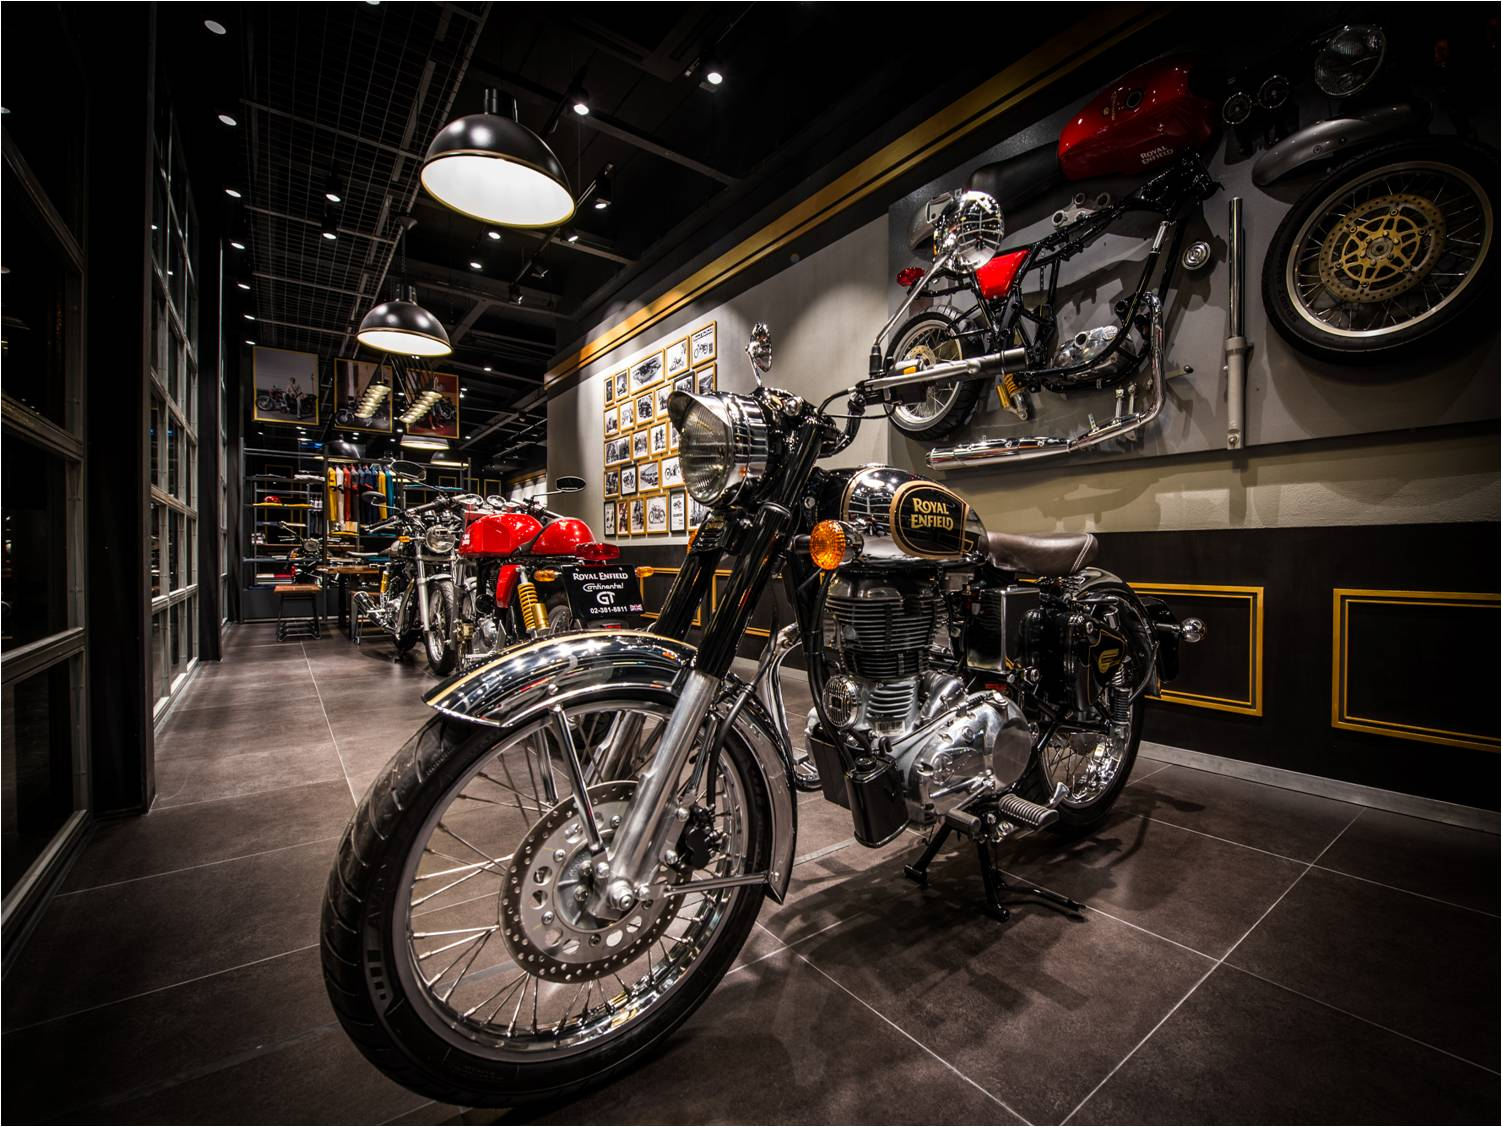 Royal enfield announces motorcycles prices in thailand for Yamaha motorcycles thailand prices